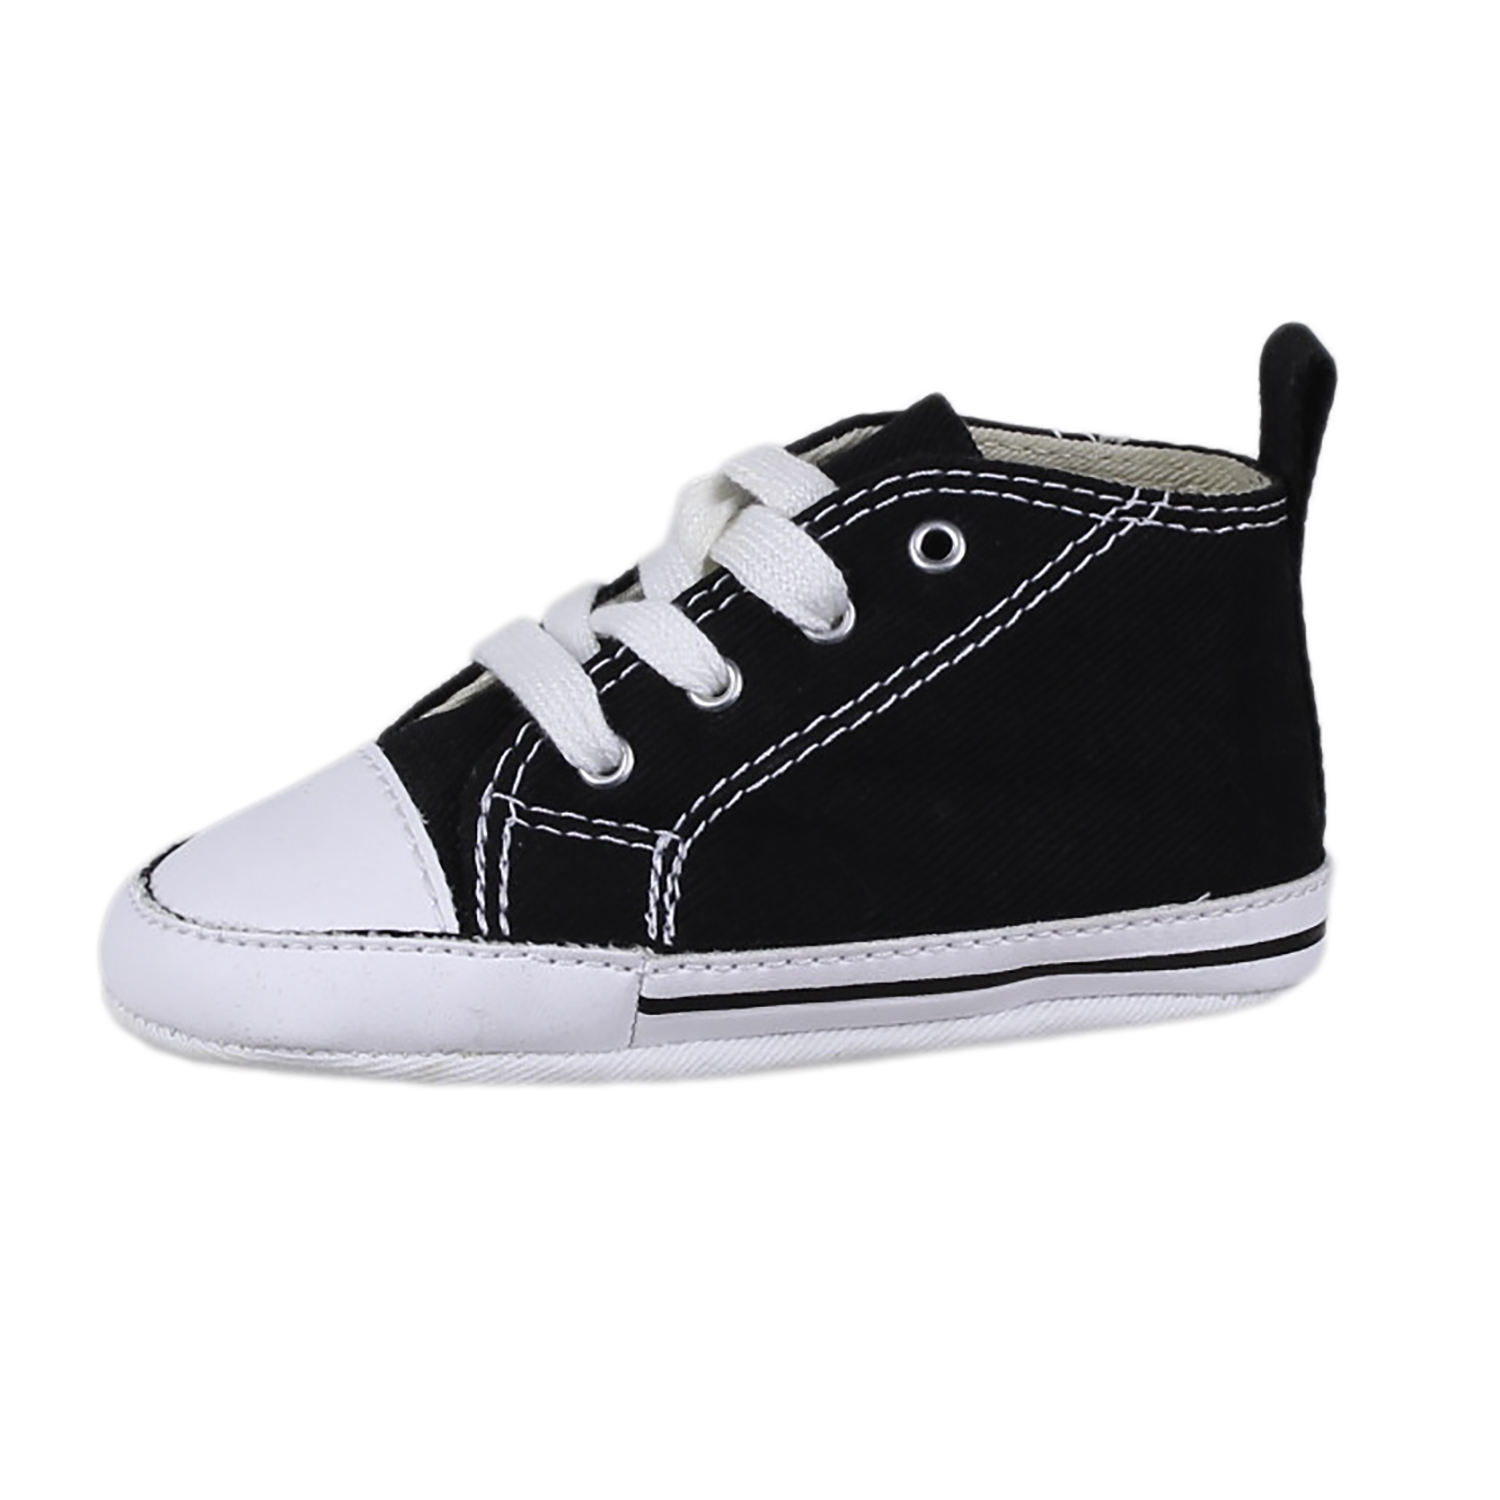 f26b968a8a7a Details about Converse Boys First Chuck Taylor All Star Hi Top Shoes